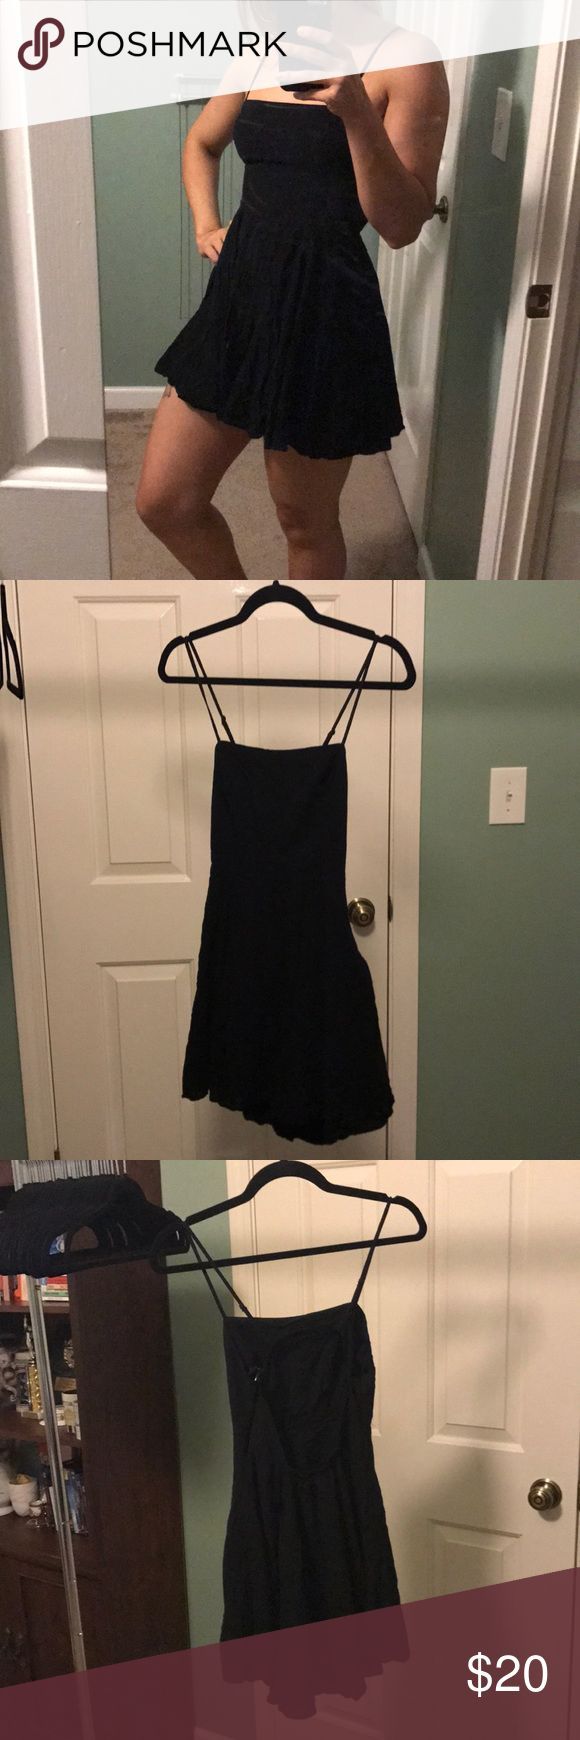 Silence + Noise Skater LBD Pre owned but excellent condition, only worn once. Rayon construction so it has a very soft, almost buttery hand. Side zipper. Elastic 'U' cutout at back. Urban Outfitters Dresses